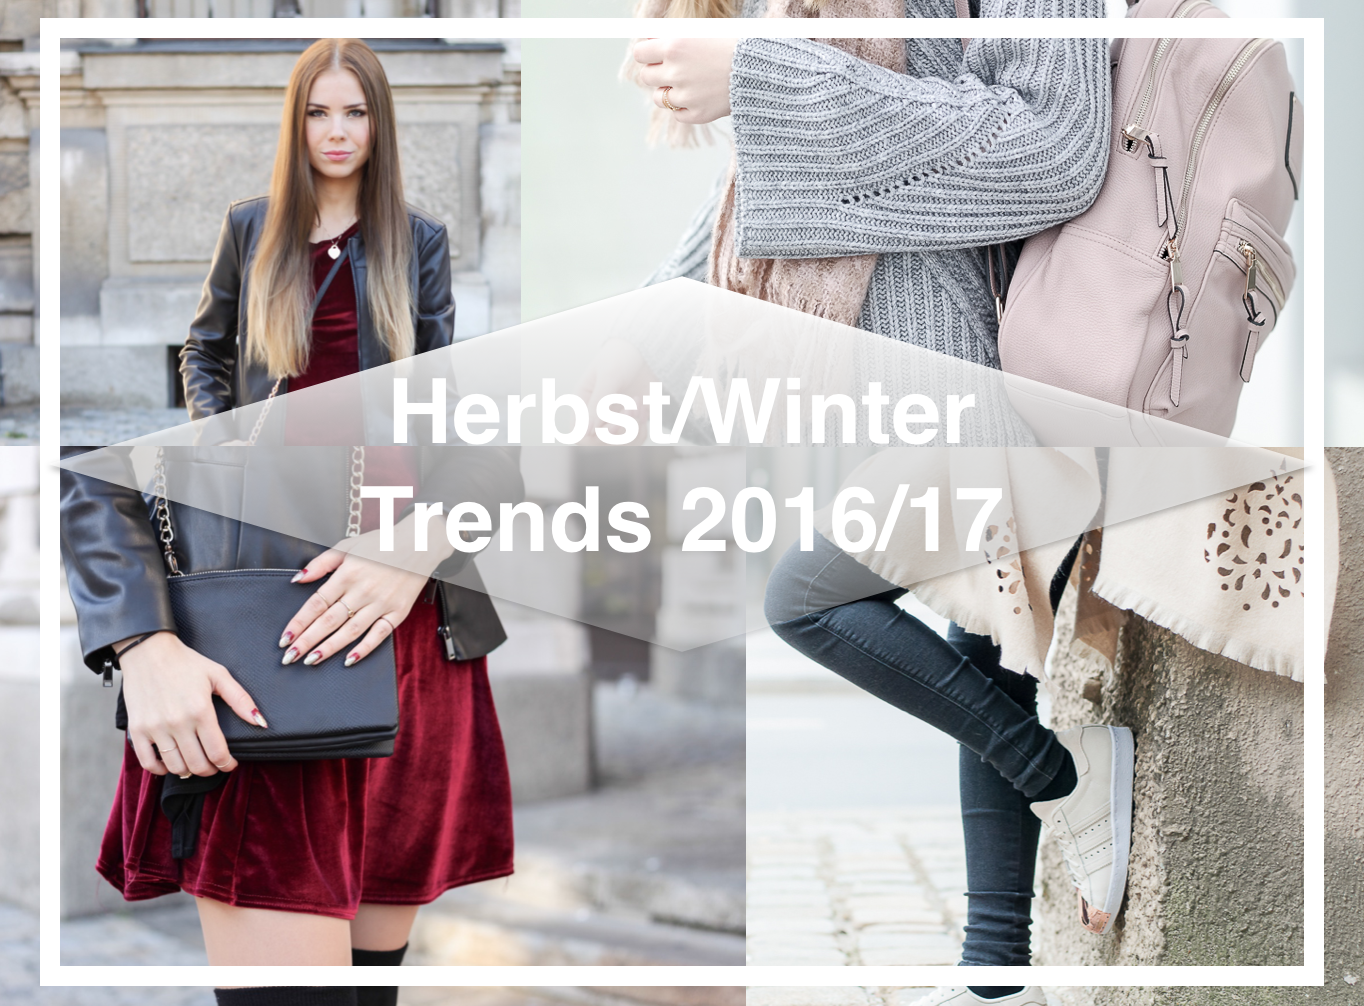 herbst-winter-modetrends-2016-2017